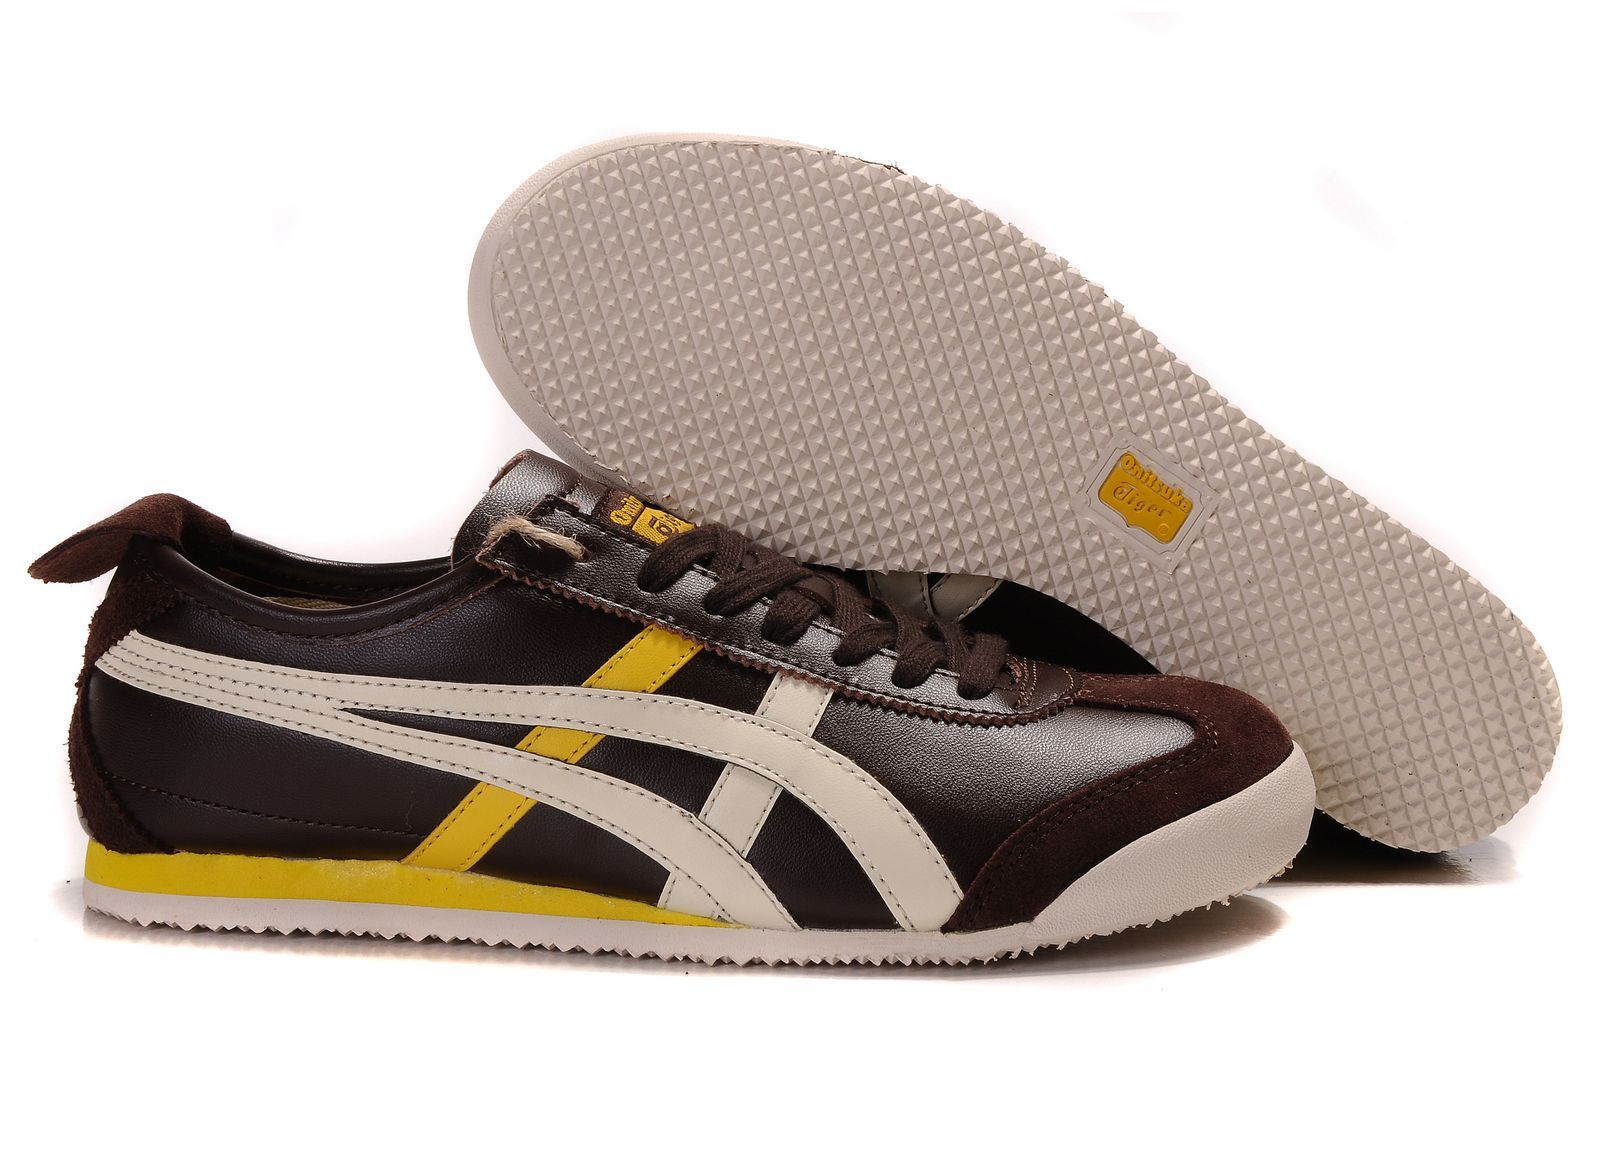 Onitsuka Tiger Mexico 66 Lauta Brown/Beige